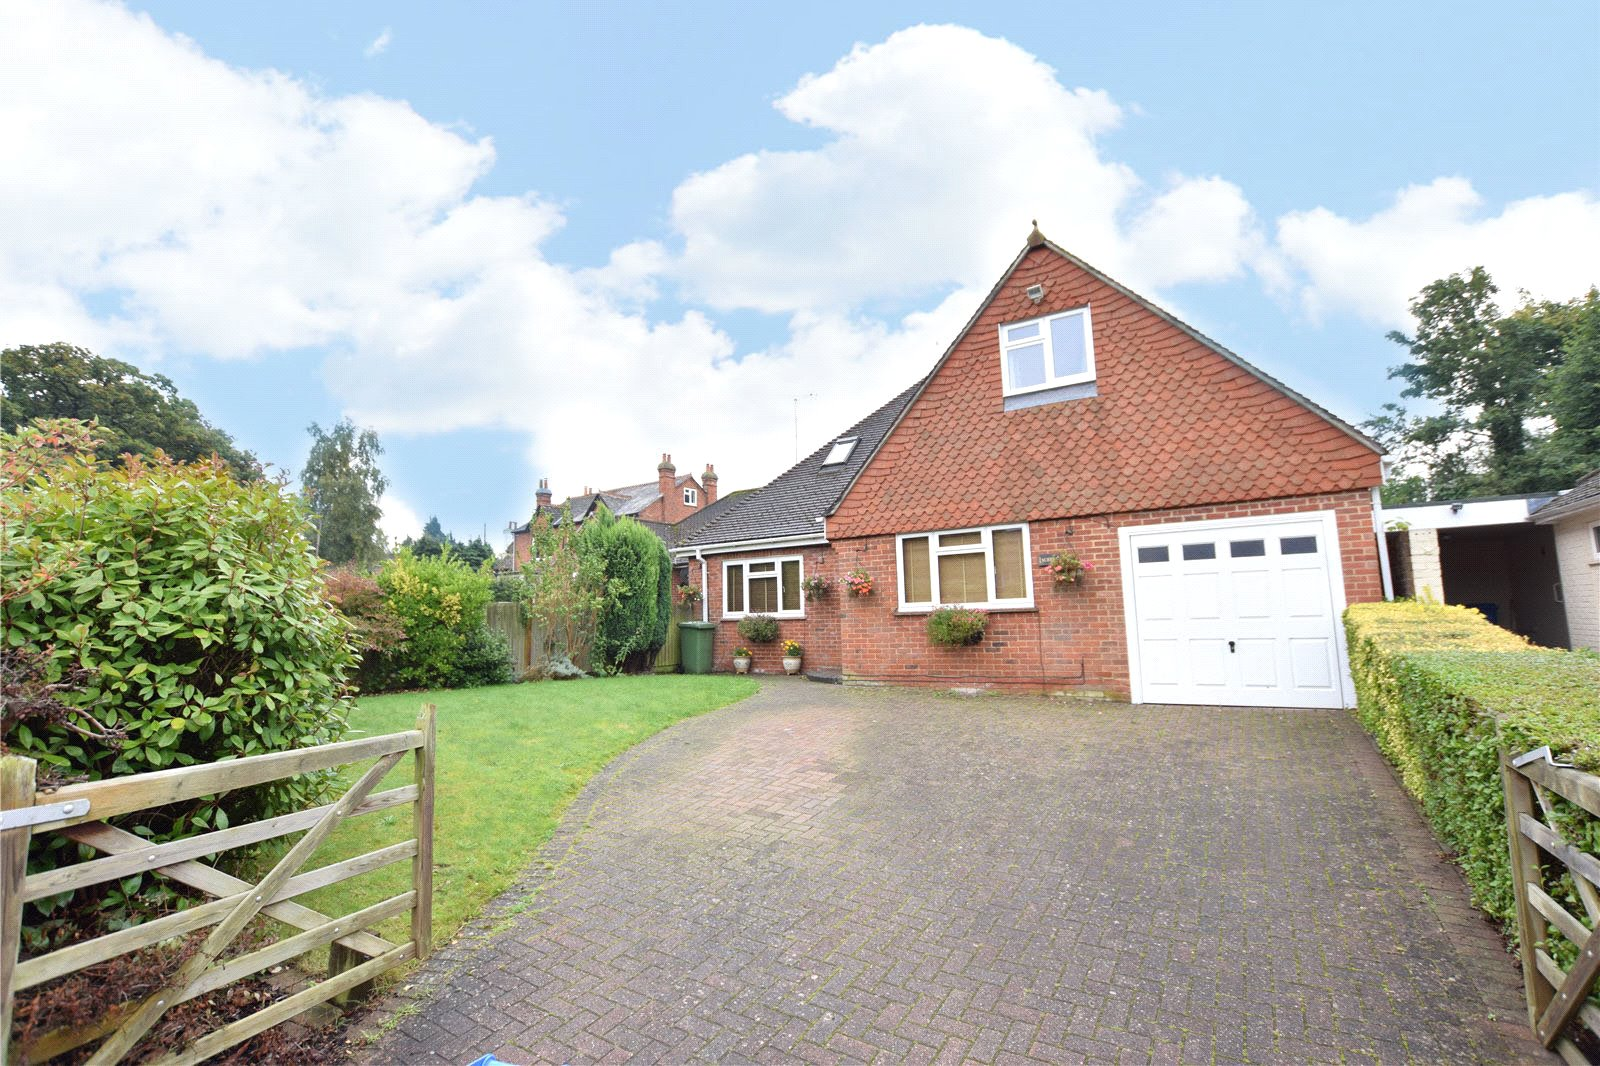 3 Bedrooms Detached House for sale in Crowthorne Road, Bracknell, Berkshire, RG12